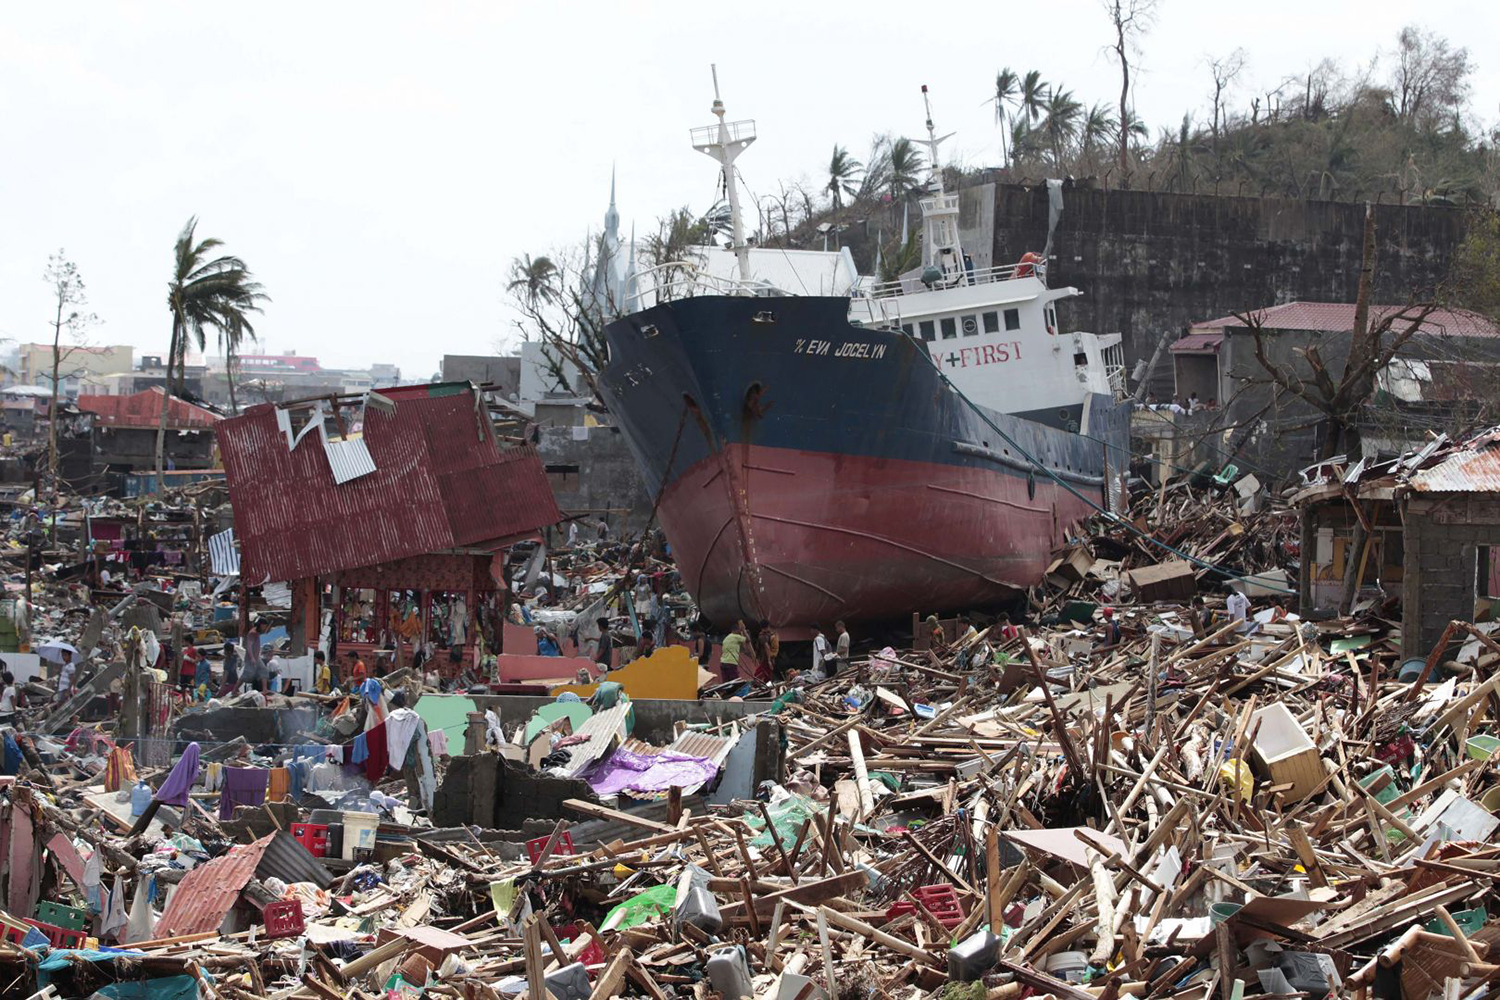 The aftermath of the Typhoon Yolanda (Haiyan) which hit Tacloban, Leyte  (Source: todayonline.com, photo by AP)